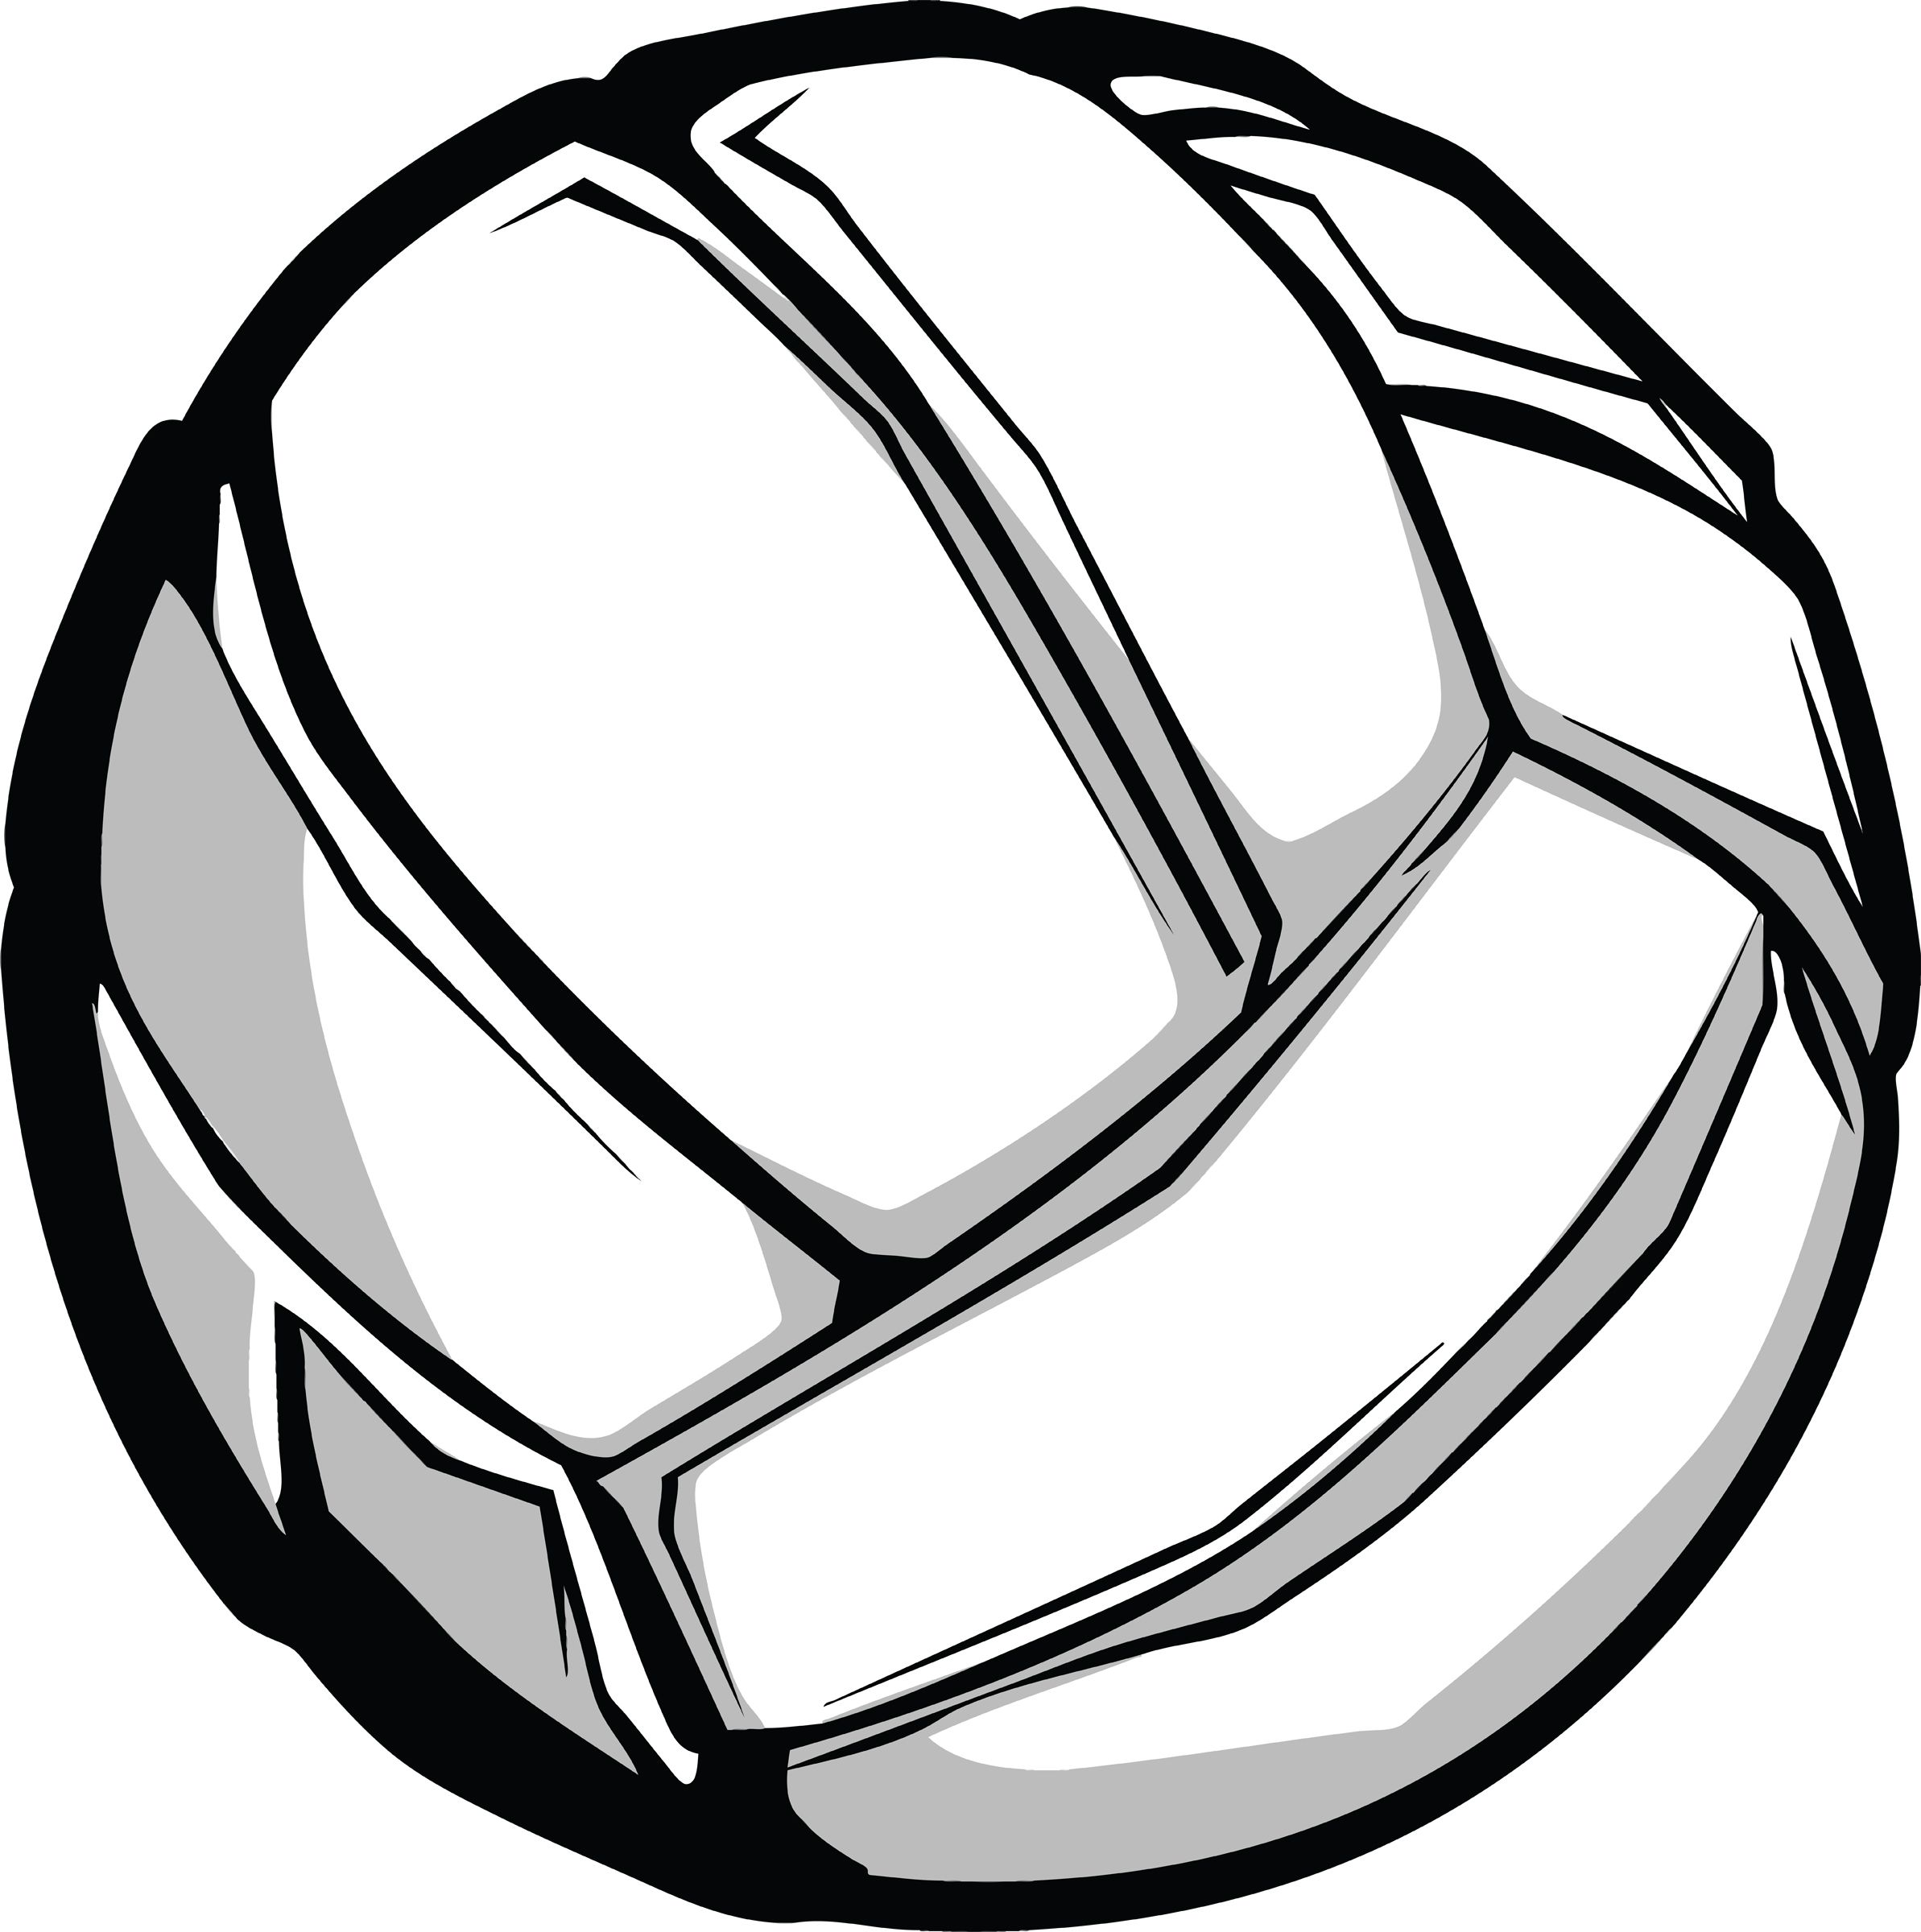 Volleyball 2016 Volleyball Clipart Volleyball Free Clipart Images